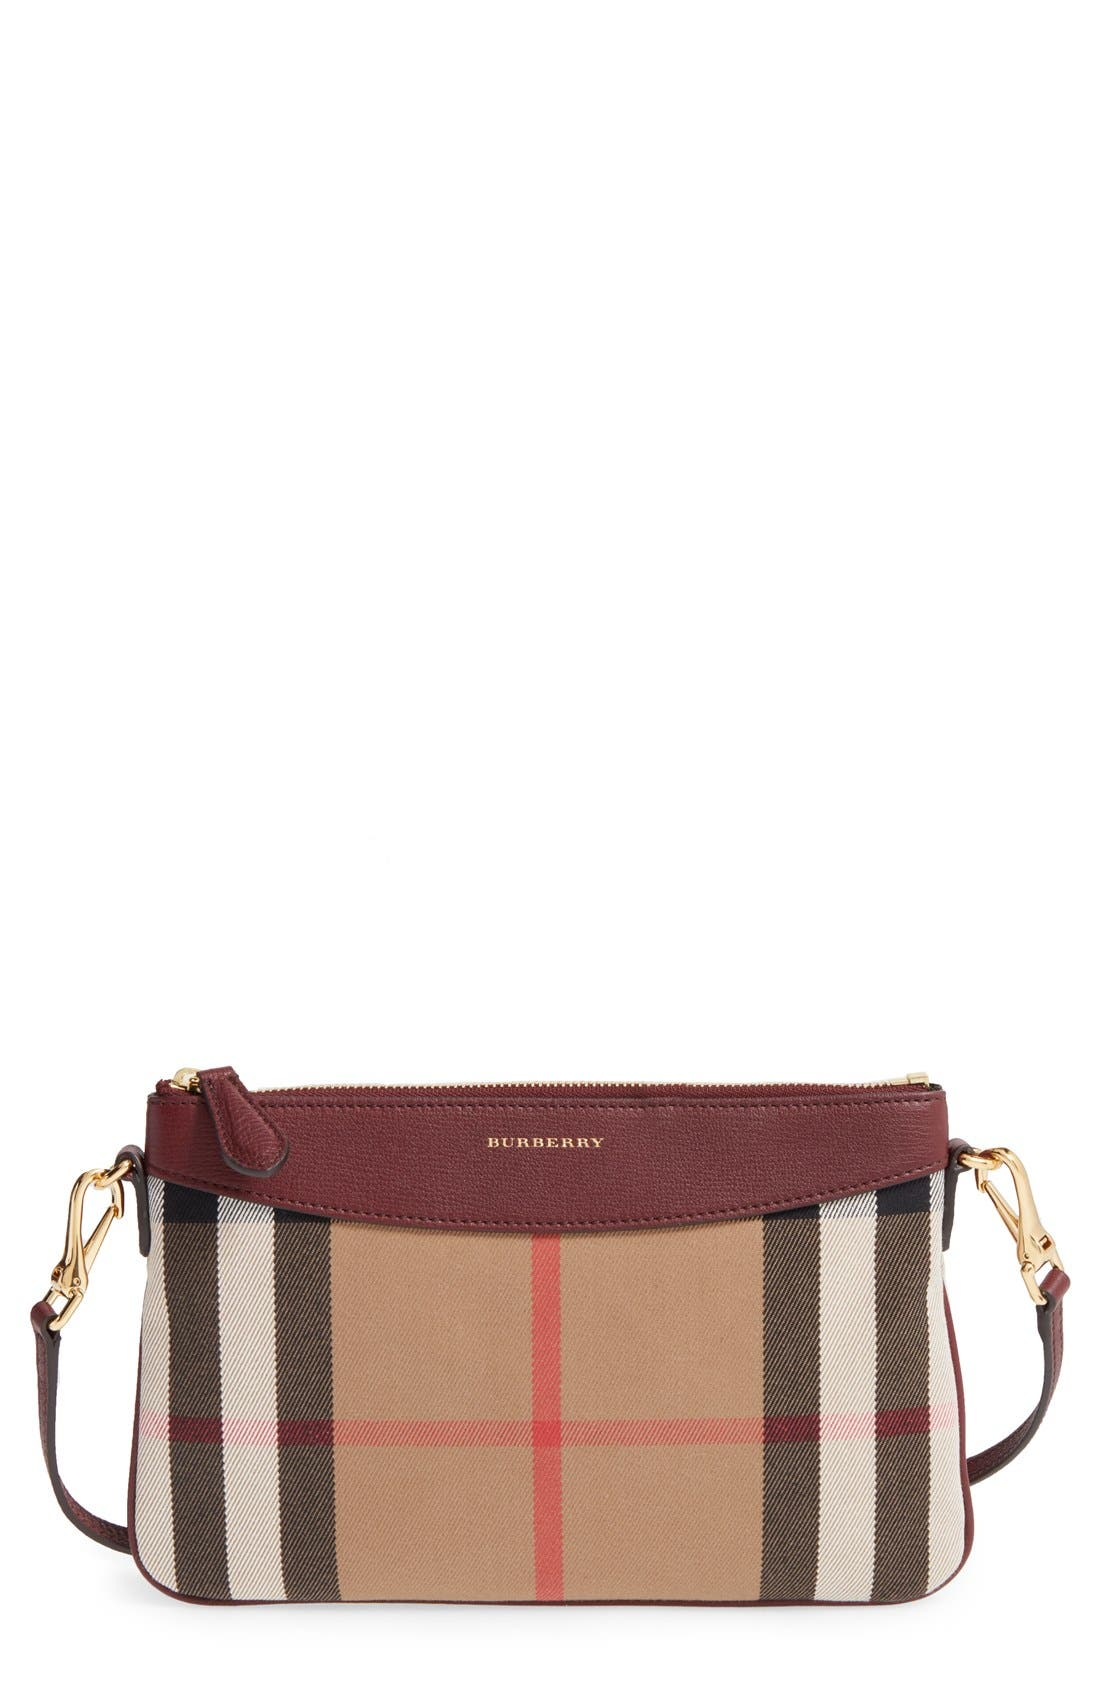 'Peyton - House Check' Crossbody Bag,                             Main thumbnail 1, color,                             606